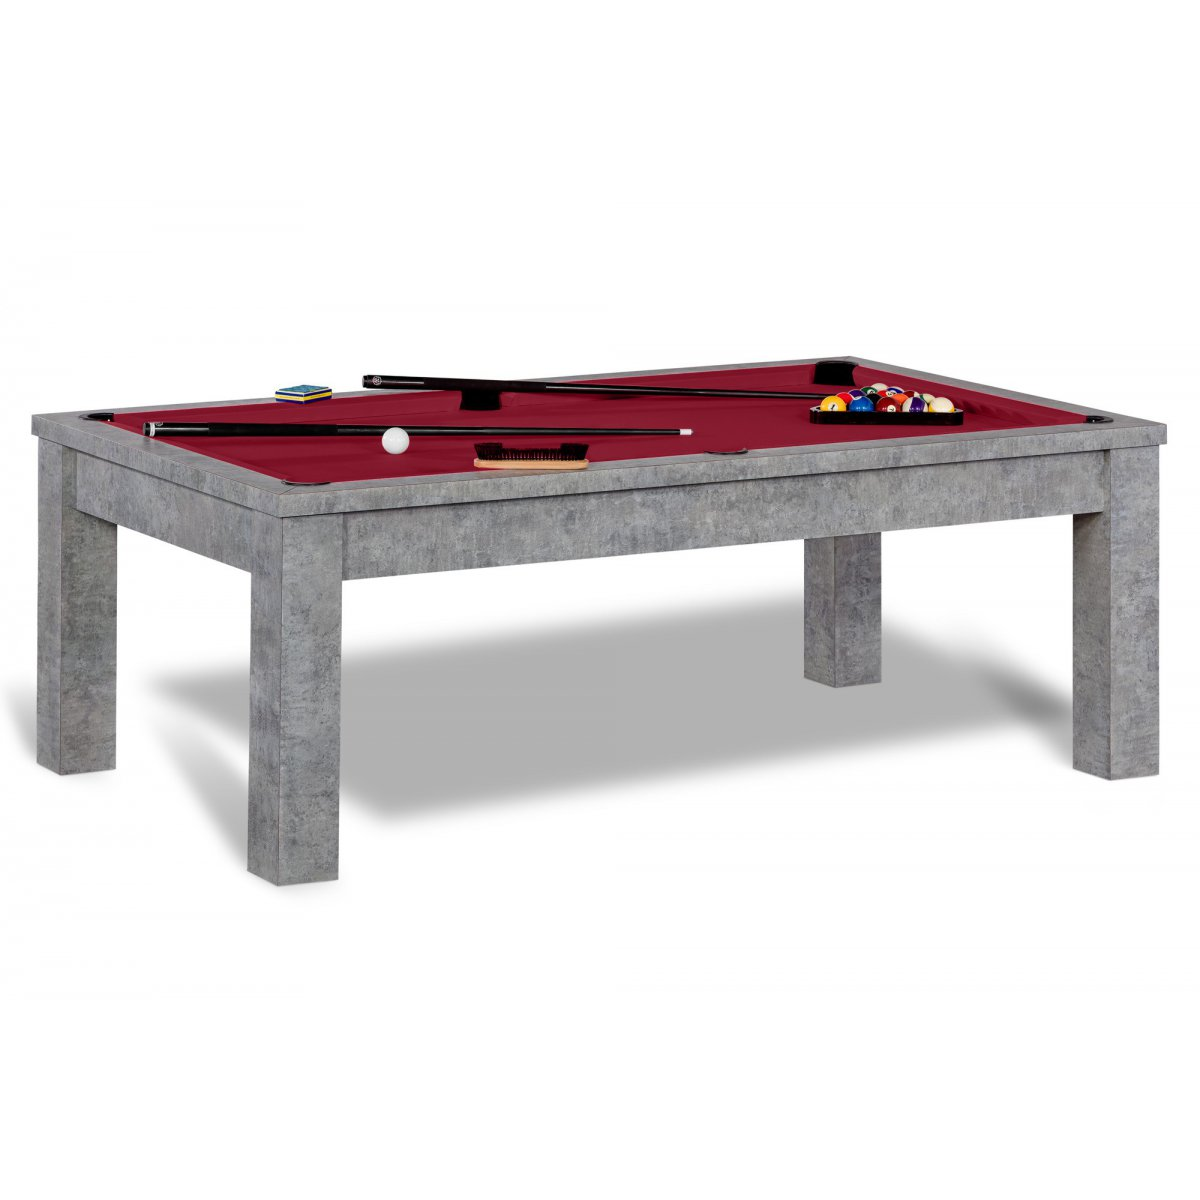 Table billard convertible panama billard anglais americain - Billard transformable en table ...